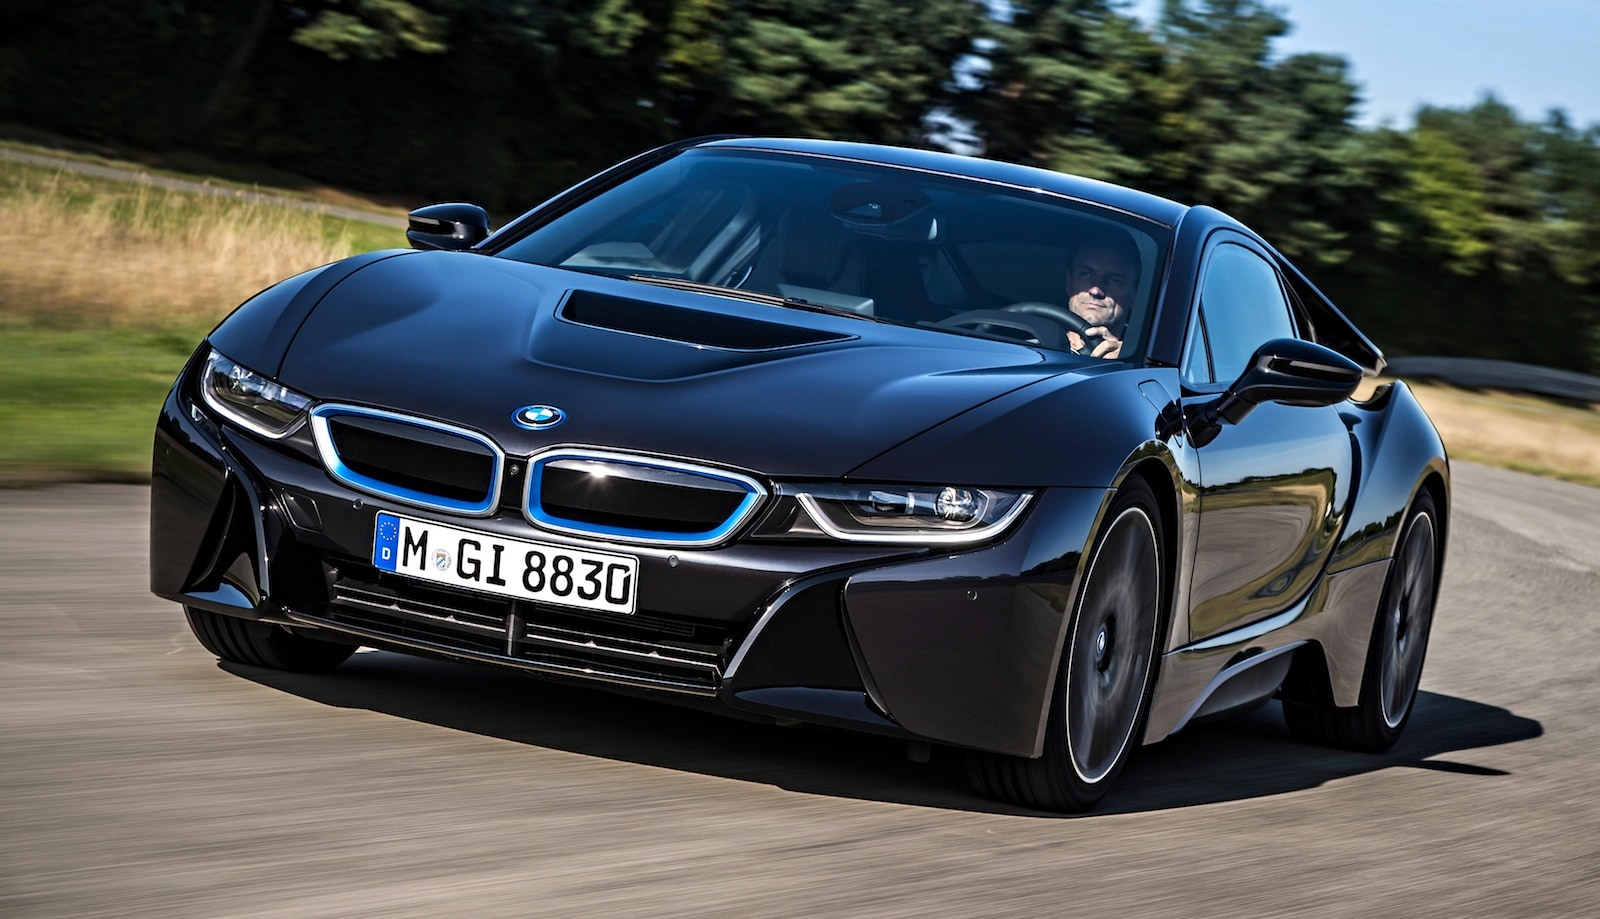 bmw i8 price in india review images bmw cars. Black Bedroom Furniture Sets. Home Design Ideas